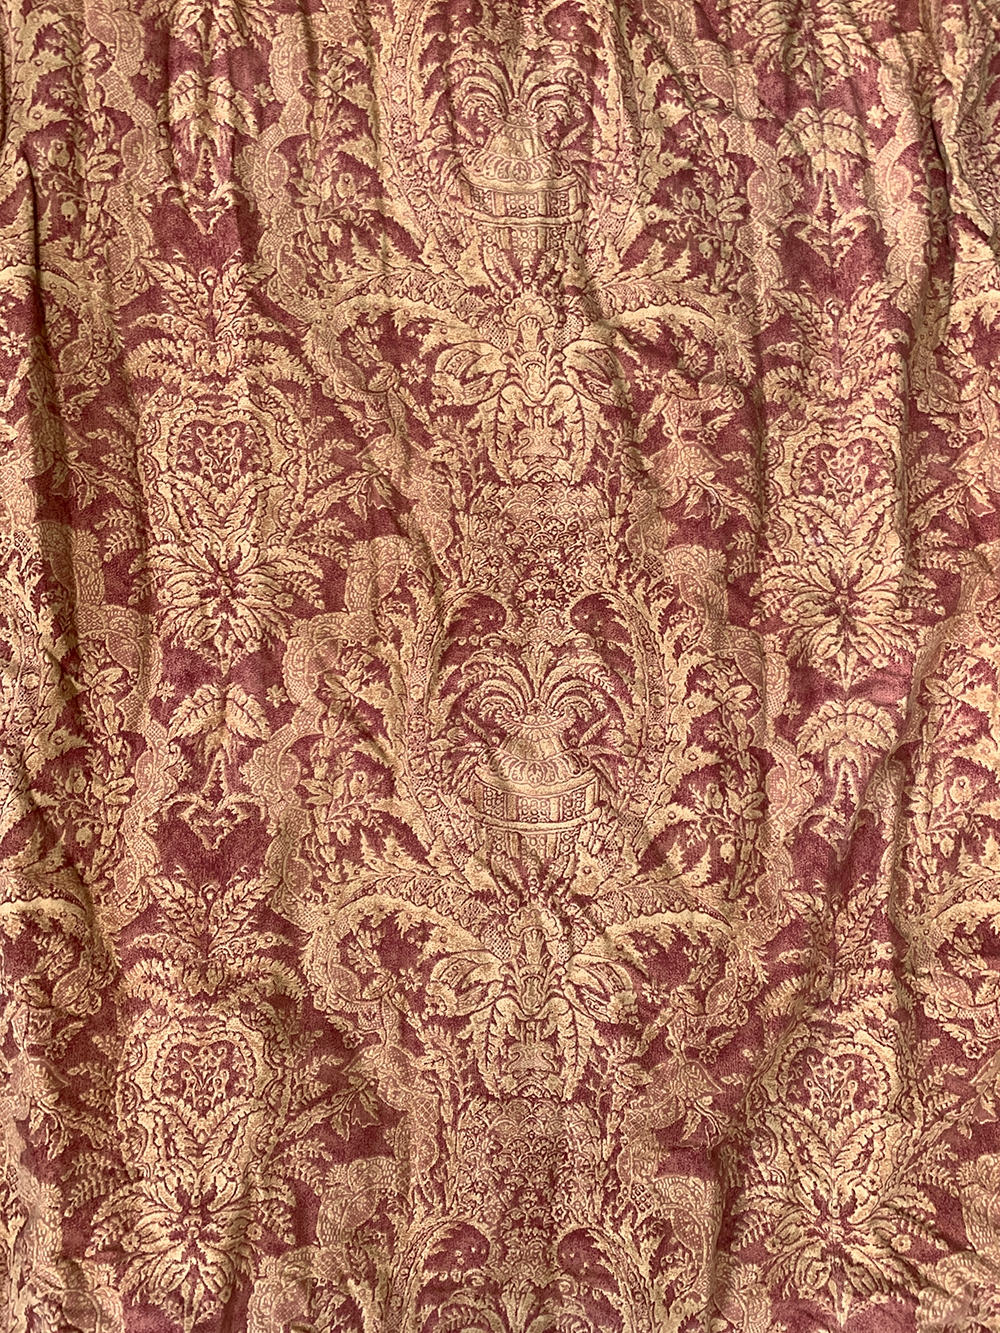 A pair of lined and interlined curtains, 290cm drop, approx. 280cm wide ungathered